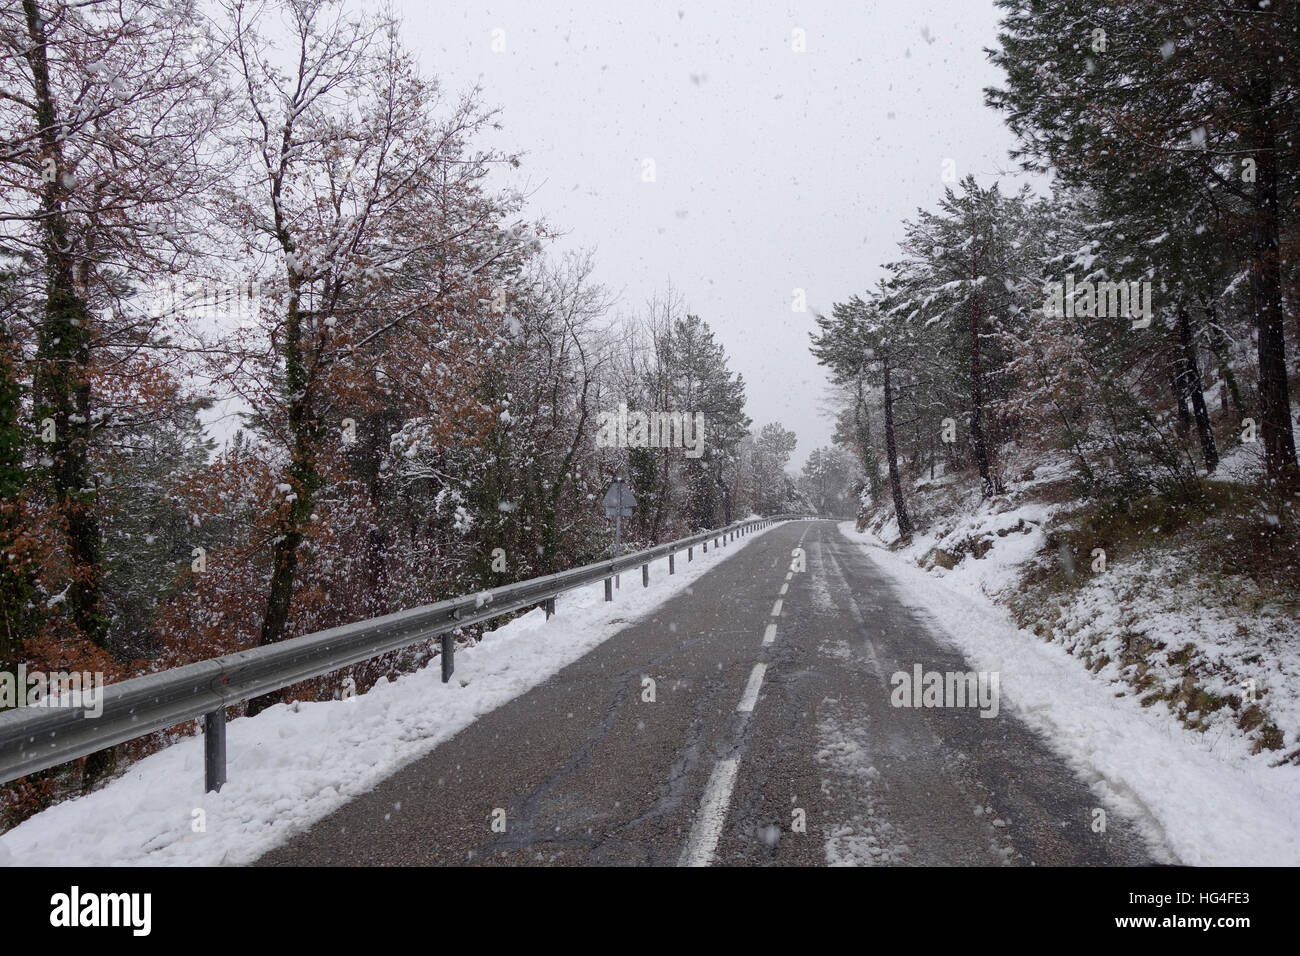 Road at winter, snowing - Stock Image